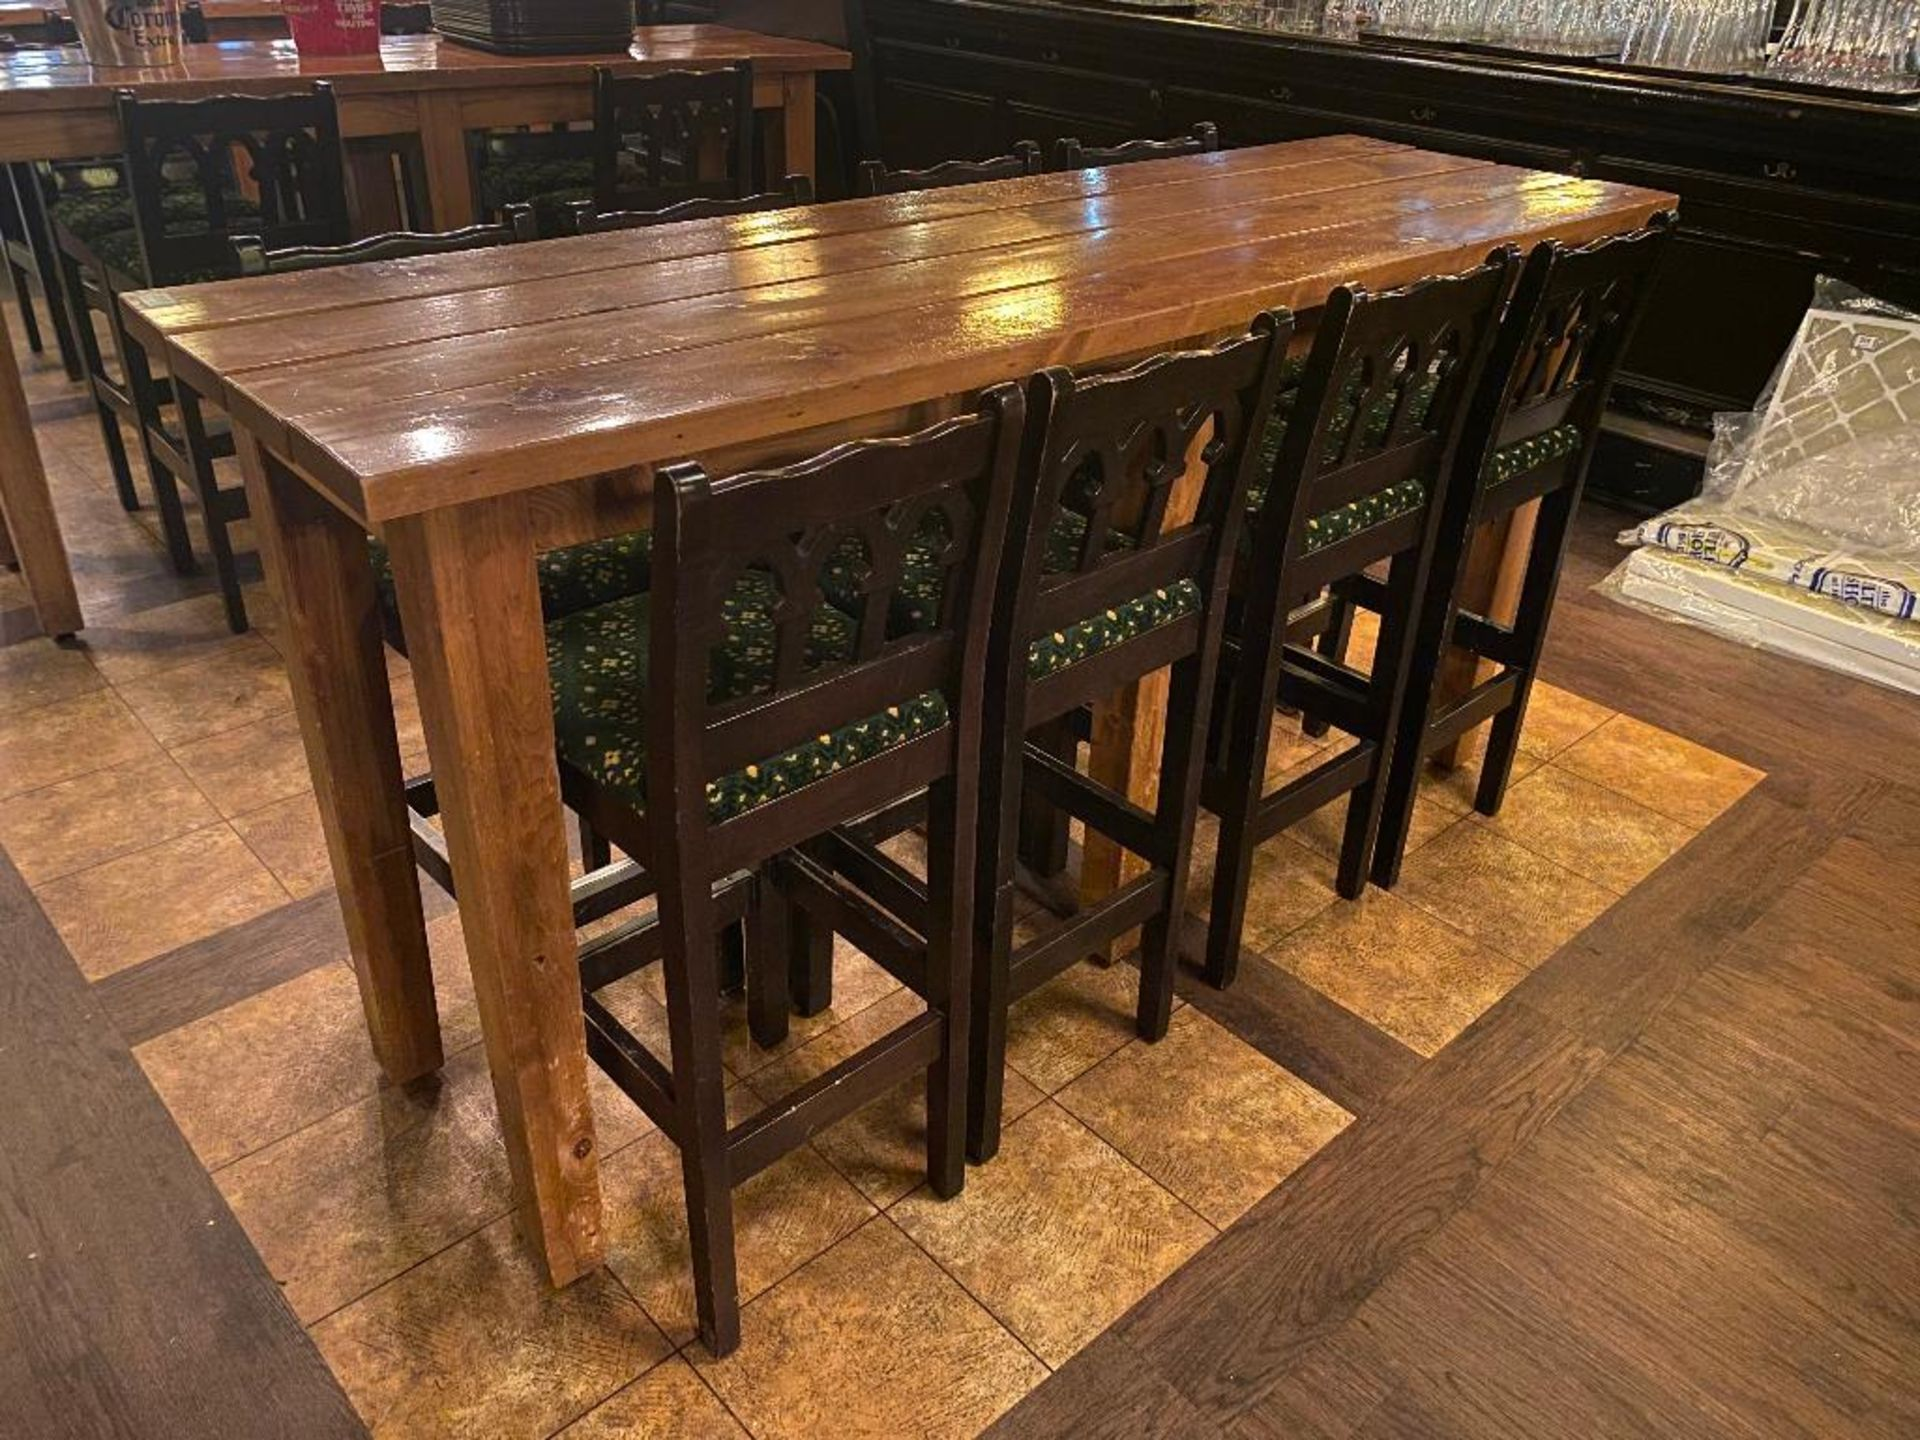 7' WOOD BAR HEIGHT TABLE WITH 8 BAR HEIGHT CHAIRS - Image 2 of 3